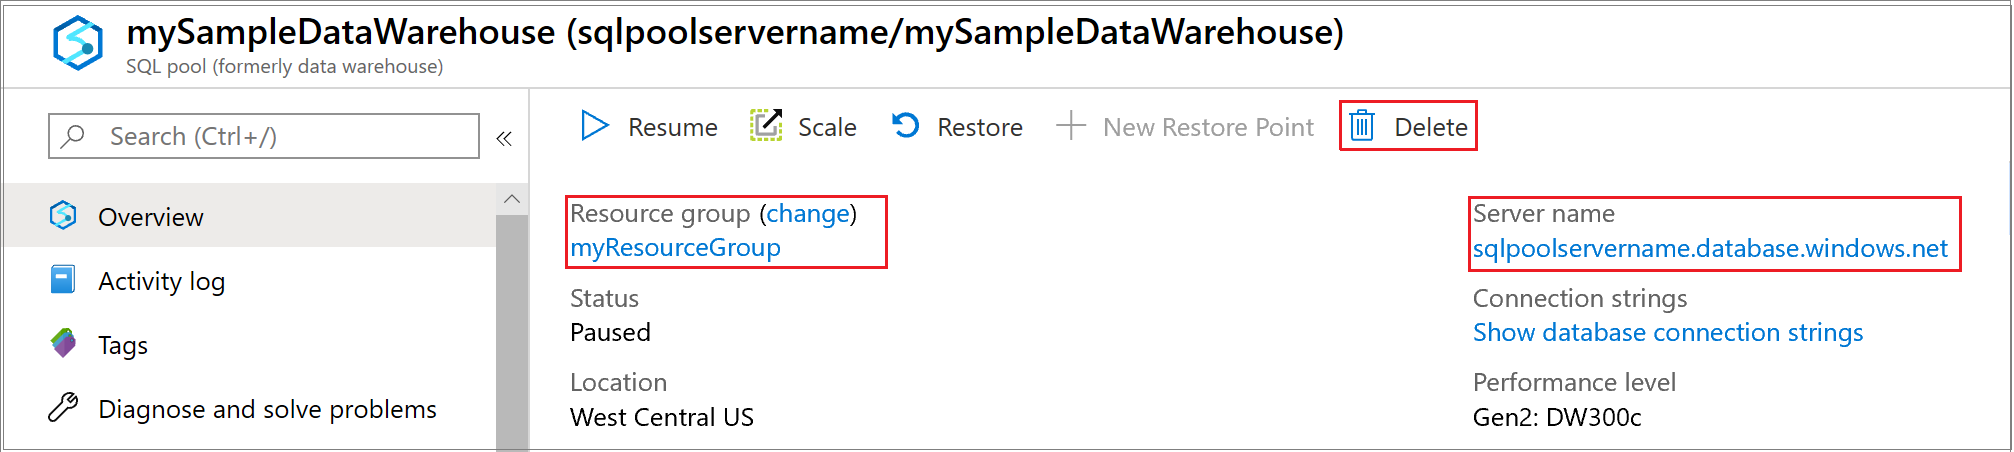 pause and resume compute in synapse sql pool via the azure